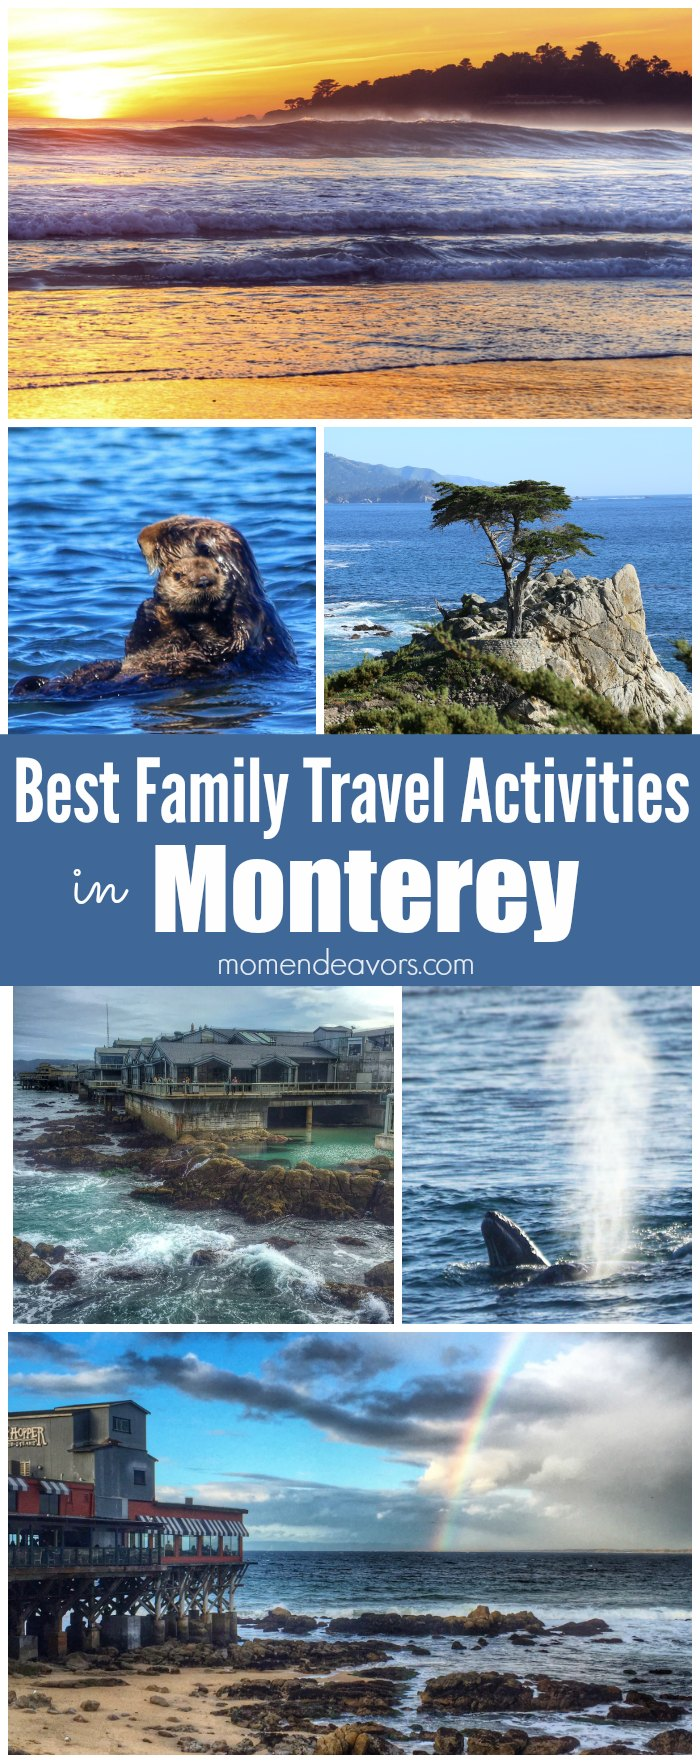 Best Family Travel Activities in Monterey